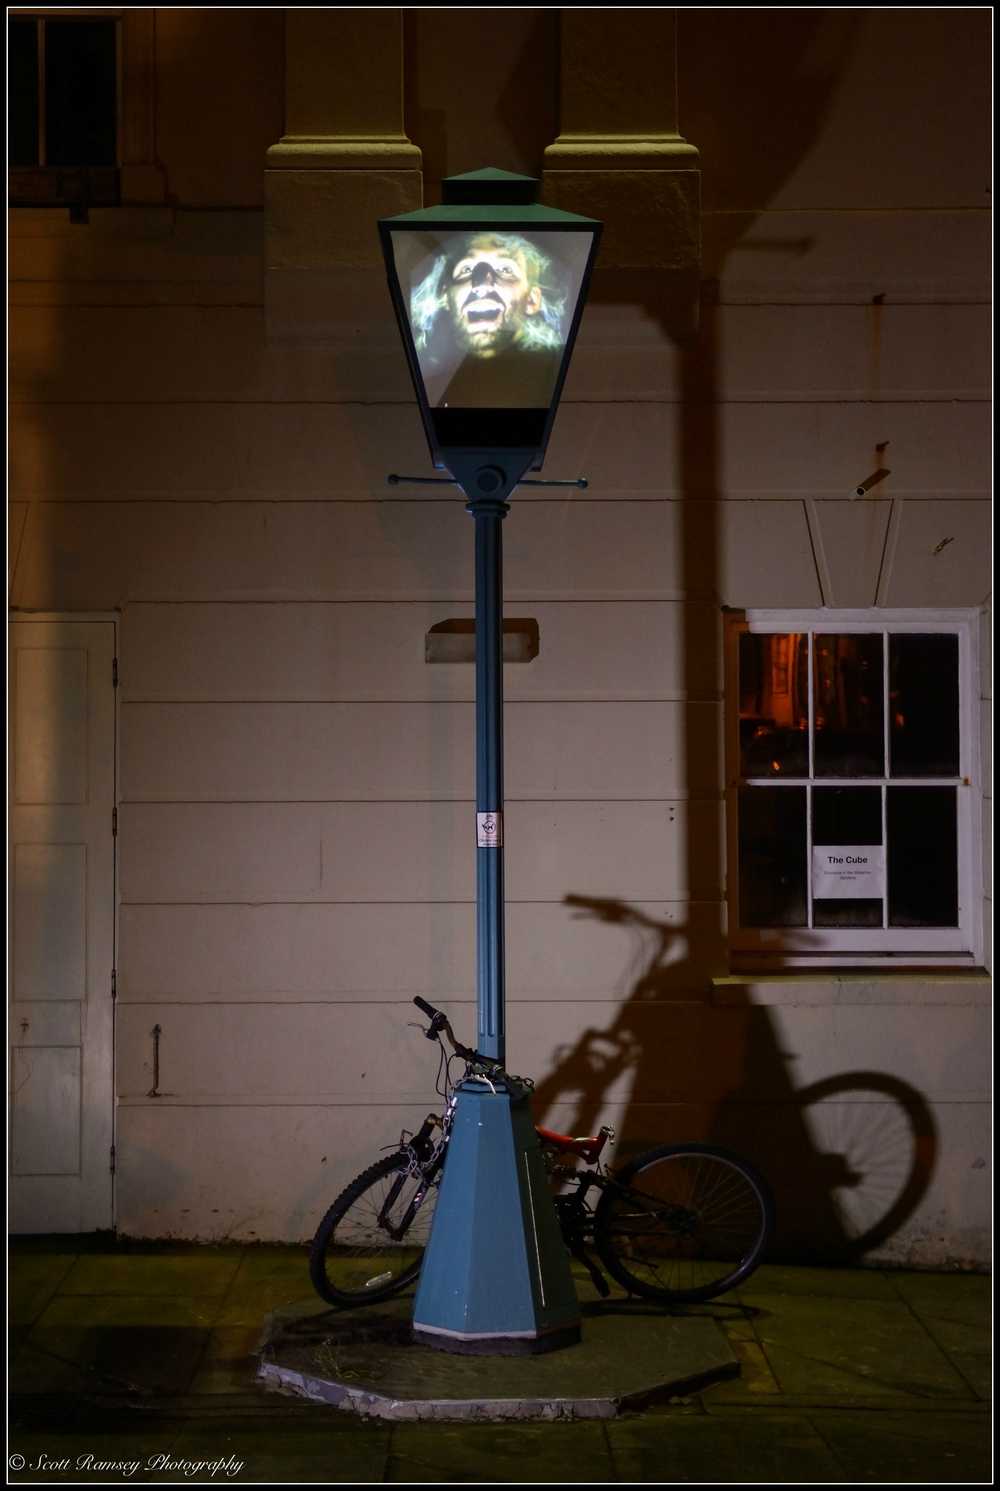 A spooky face of a man appears in the lamp post and tells a paranormal tale from the local area.